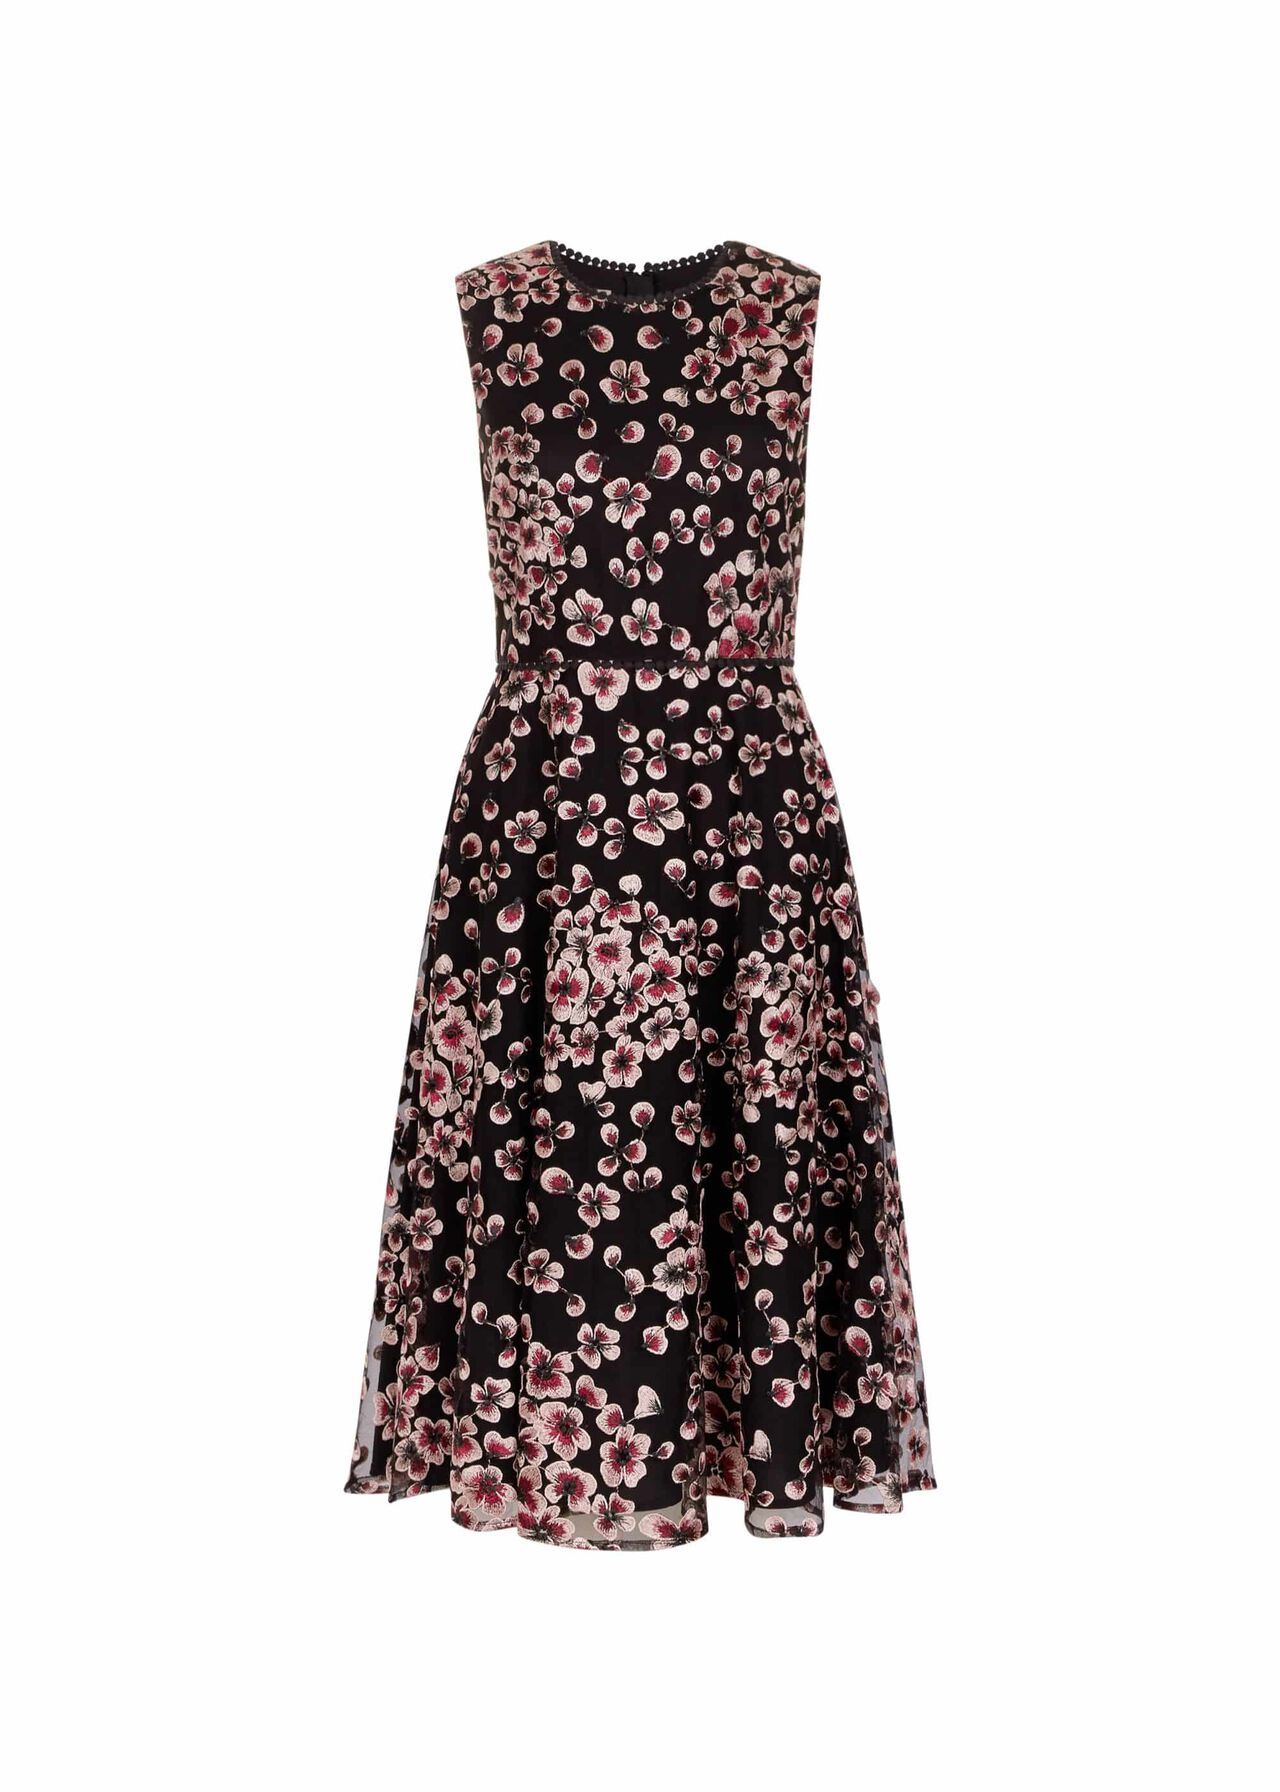 Lilith Dress Pink Black